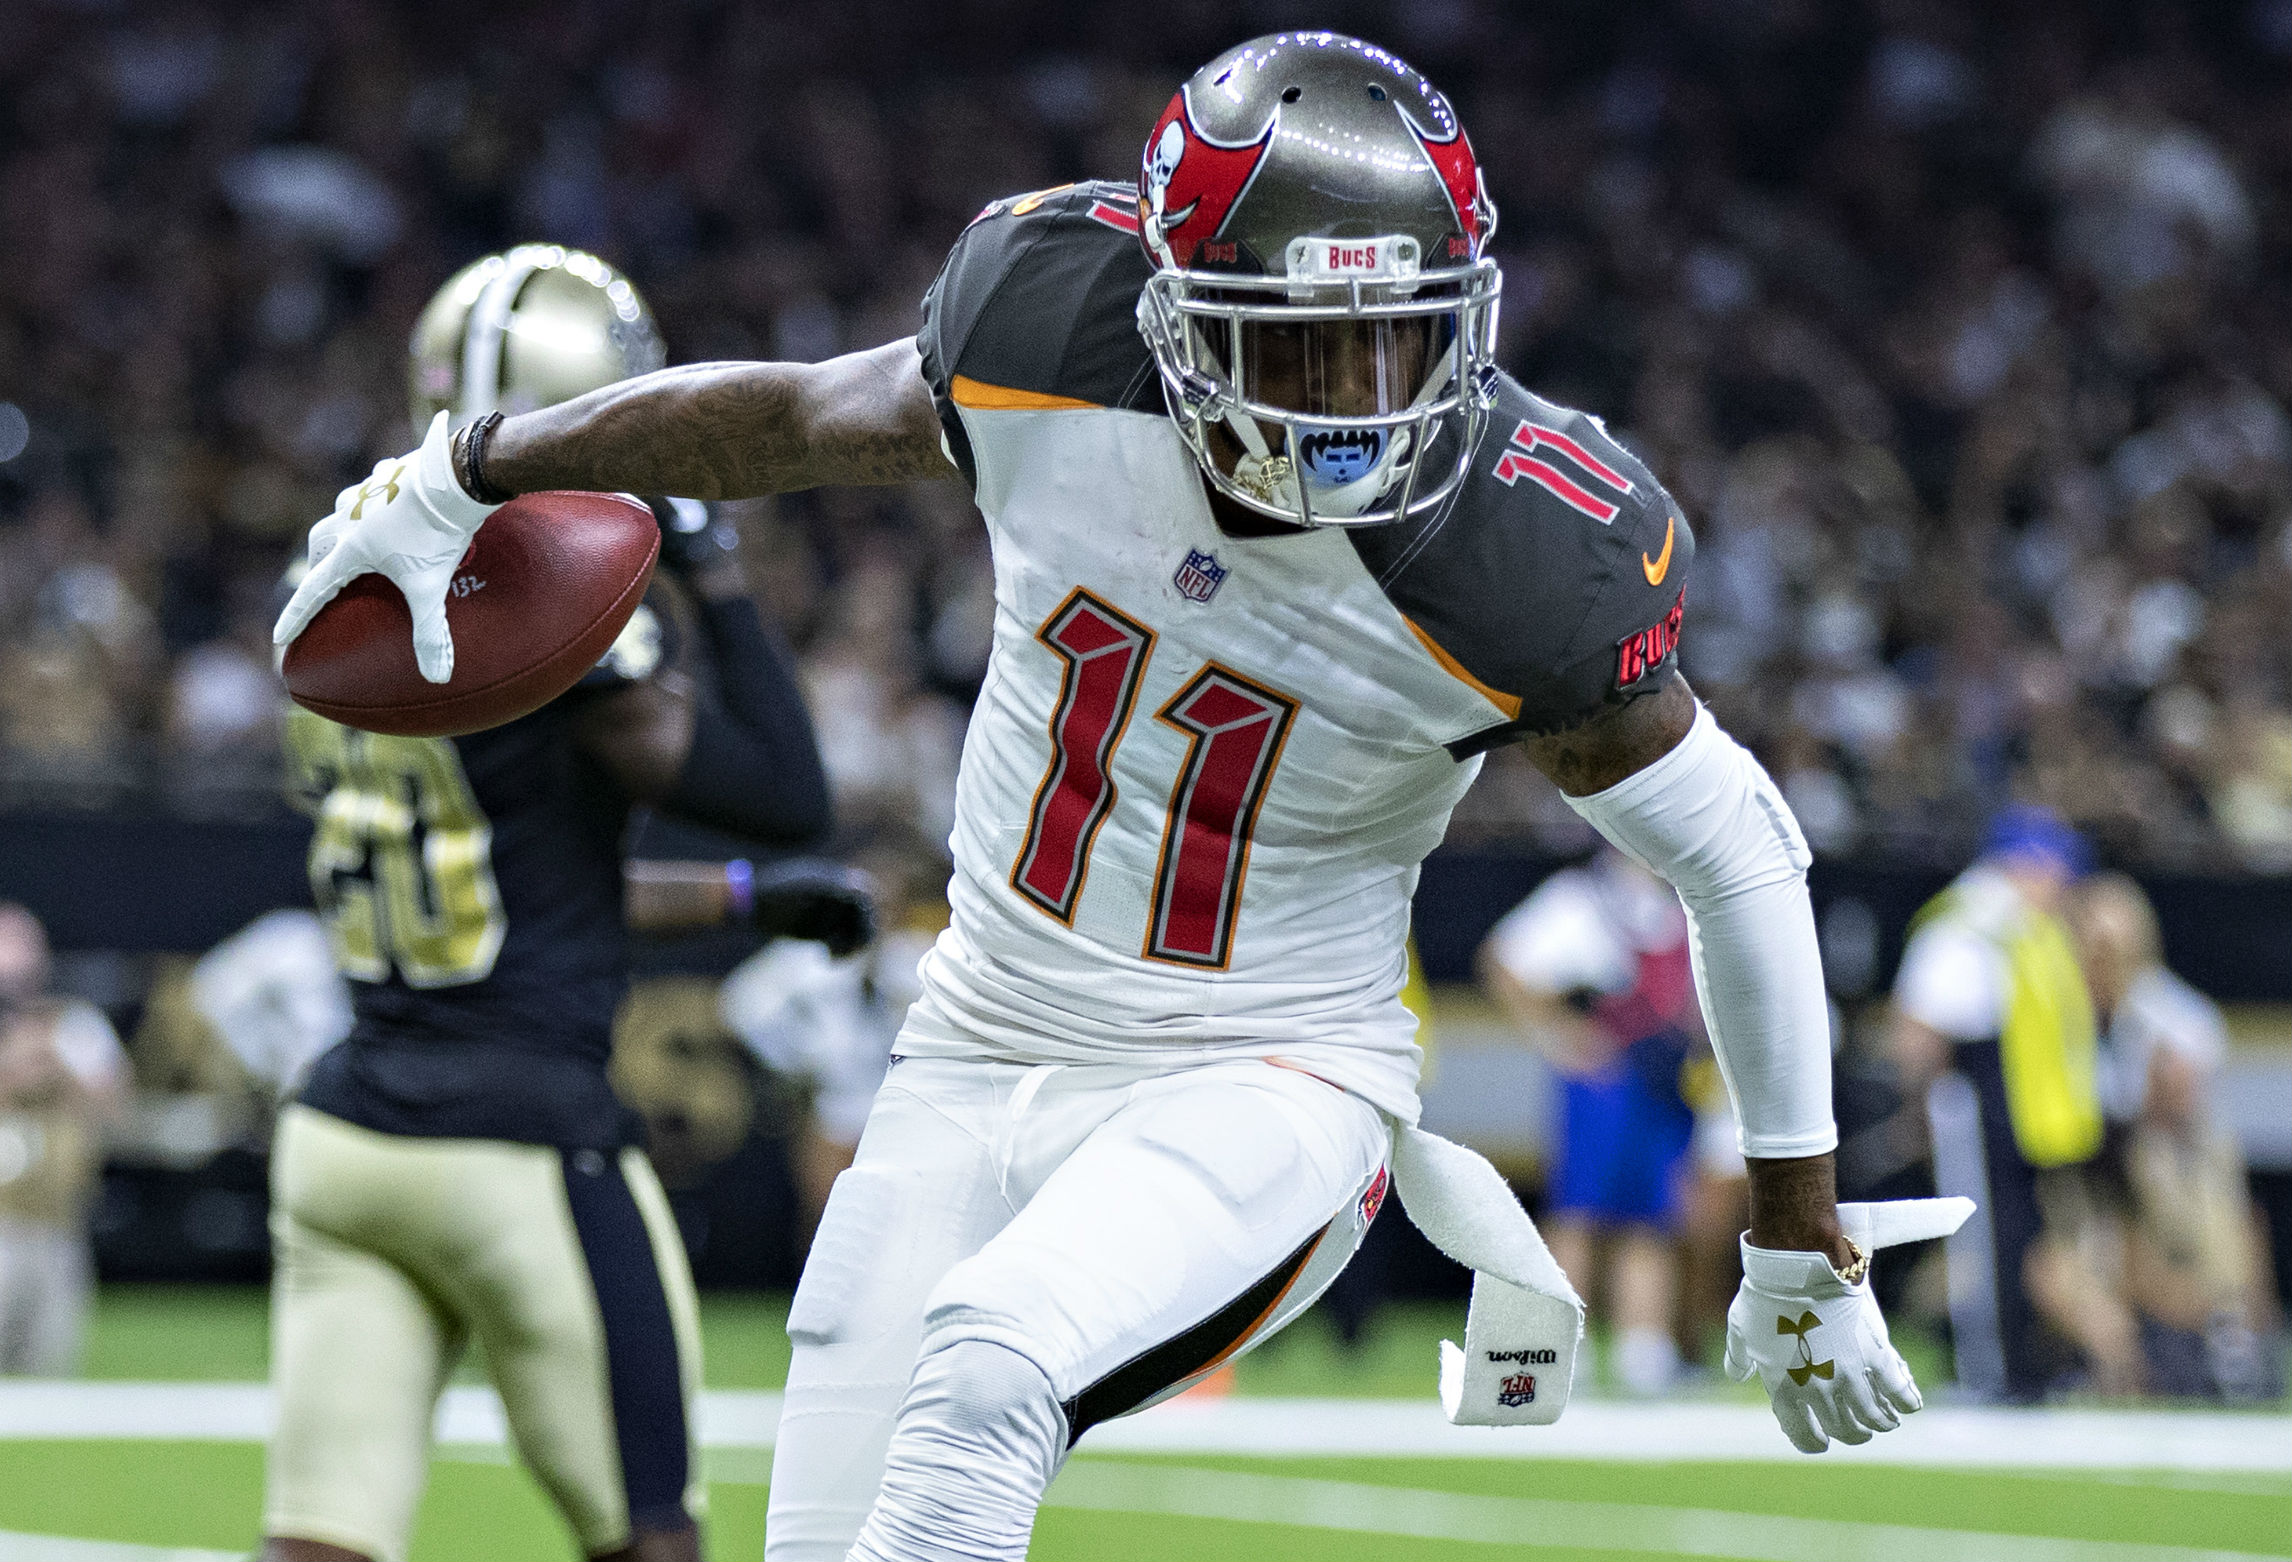 Buccaneers WR DeSean Jackson expected to play against Eagles after clearing concussion protocol, report says